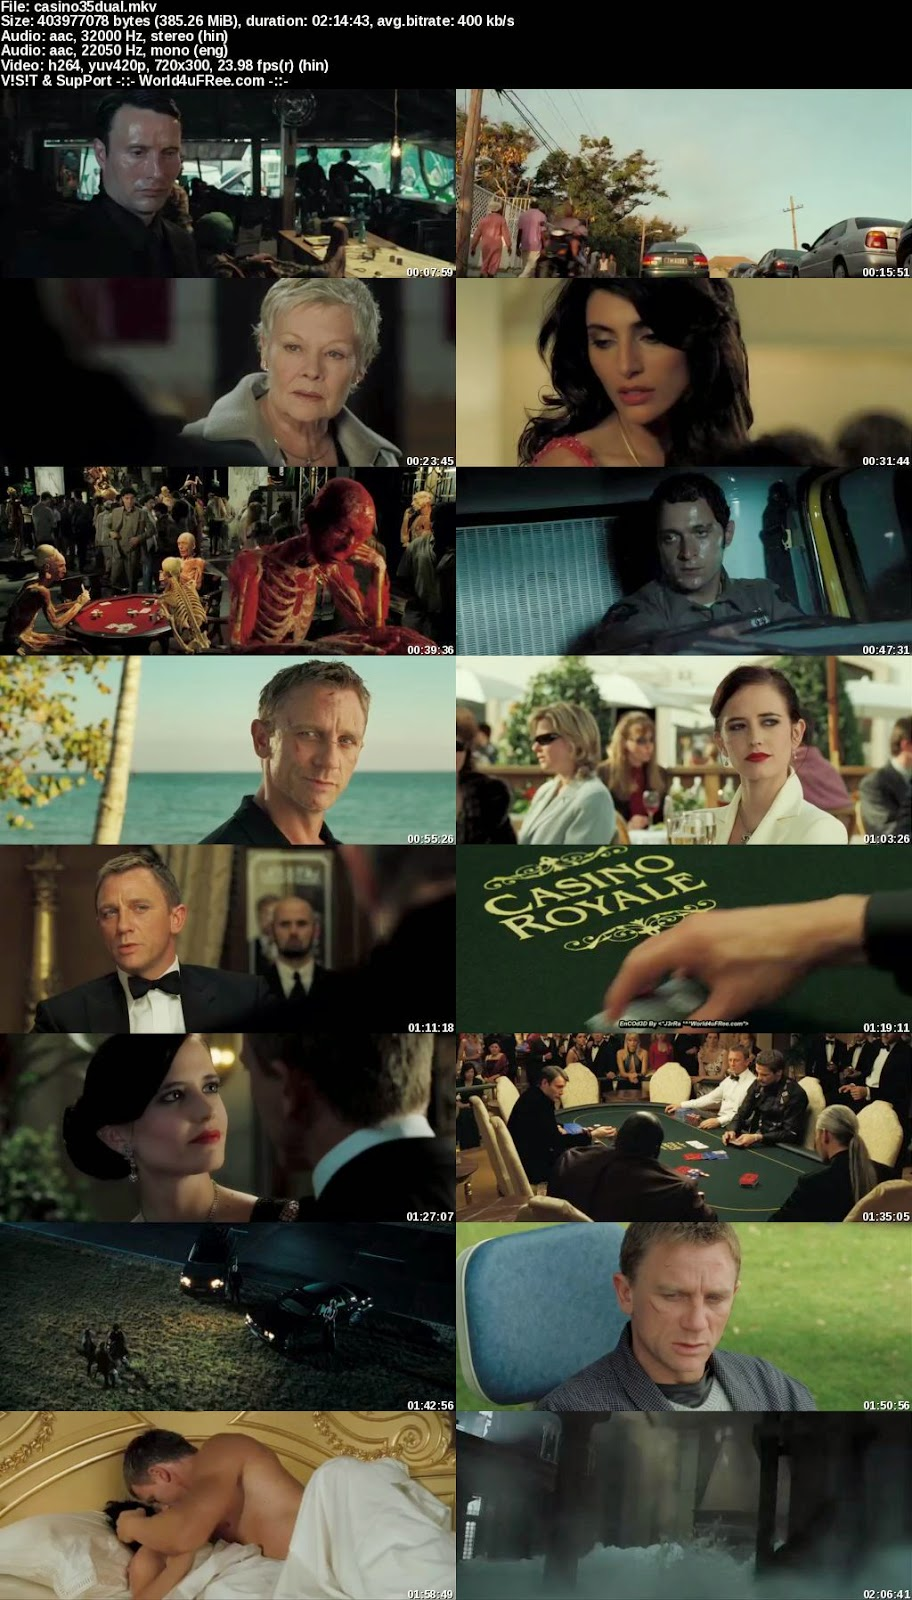 download casino royale 720p dual audio